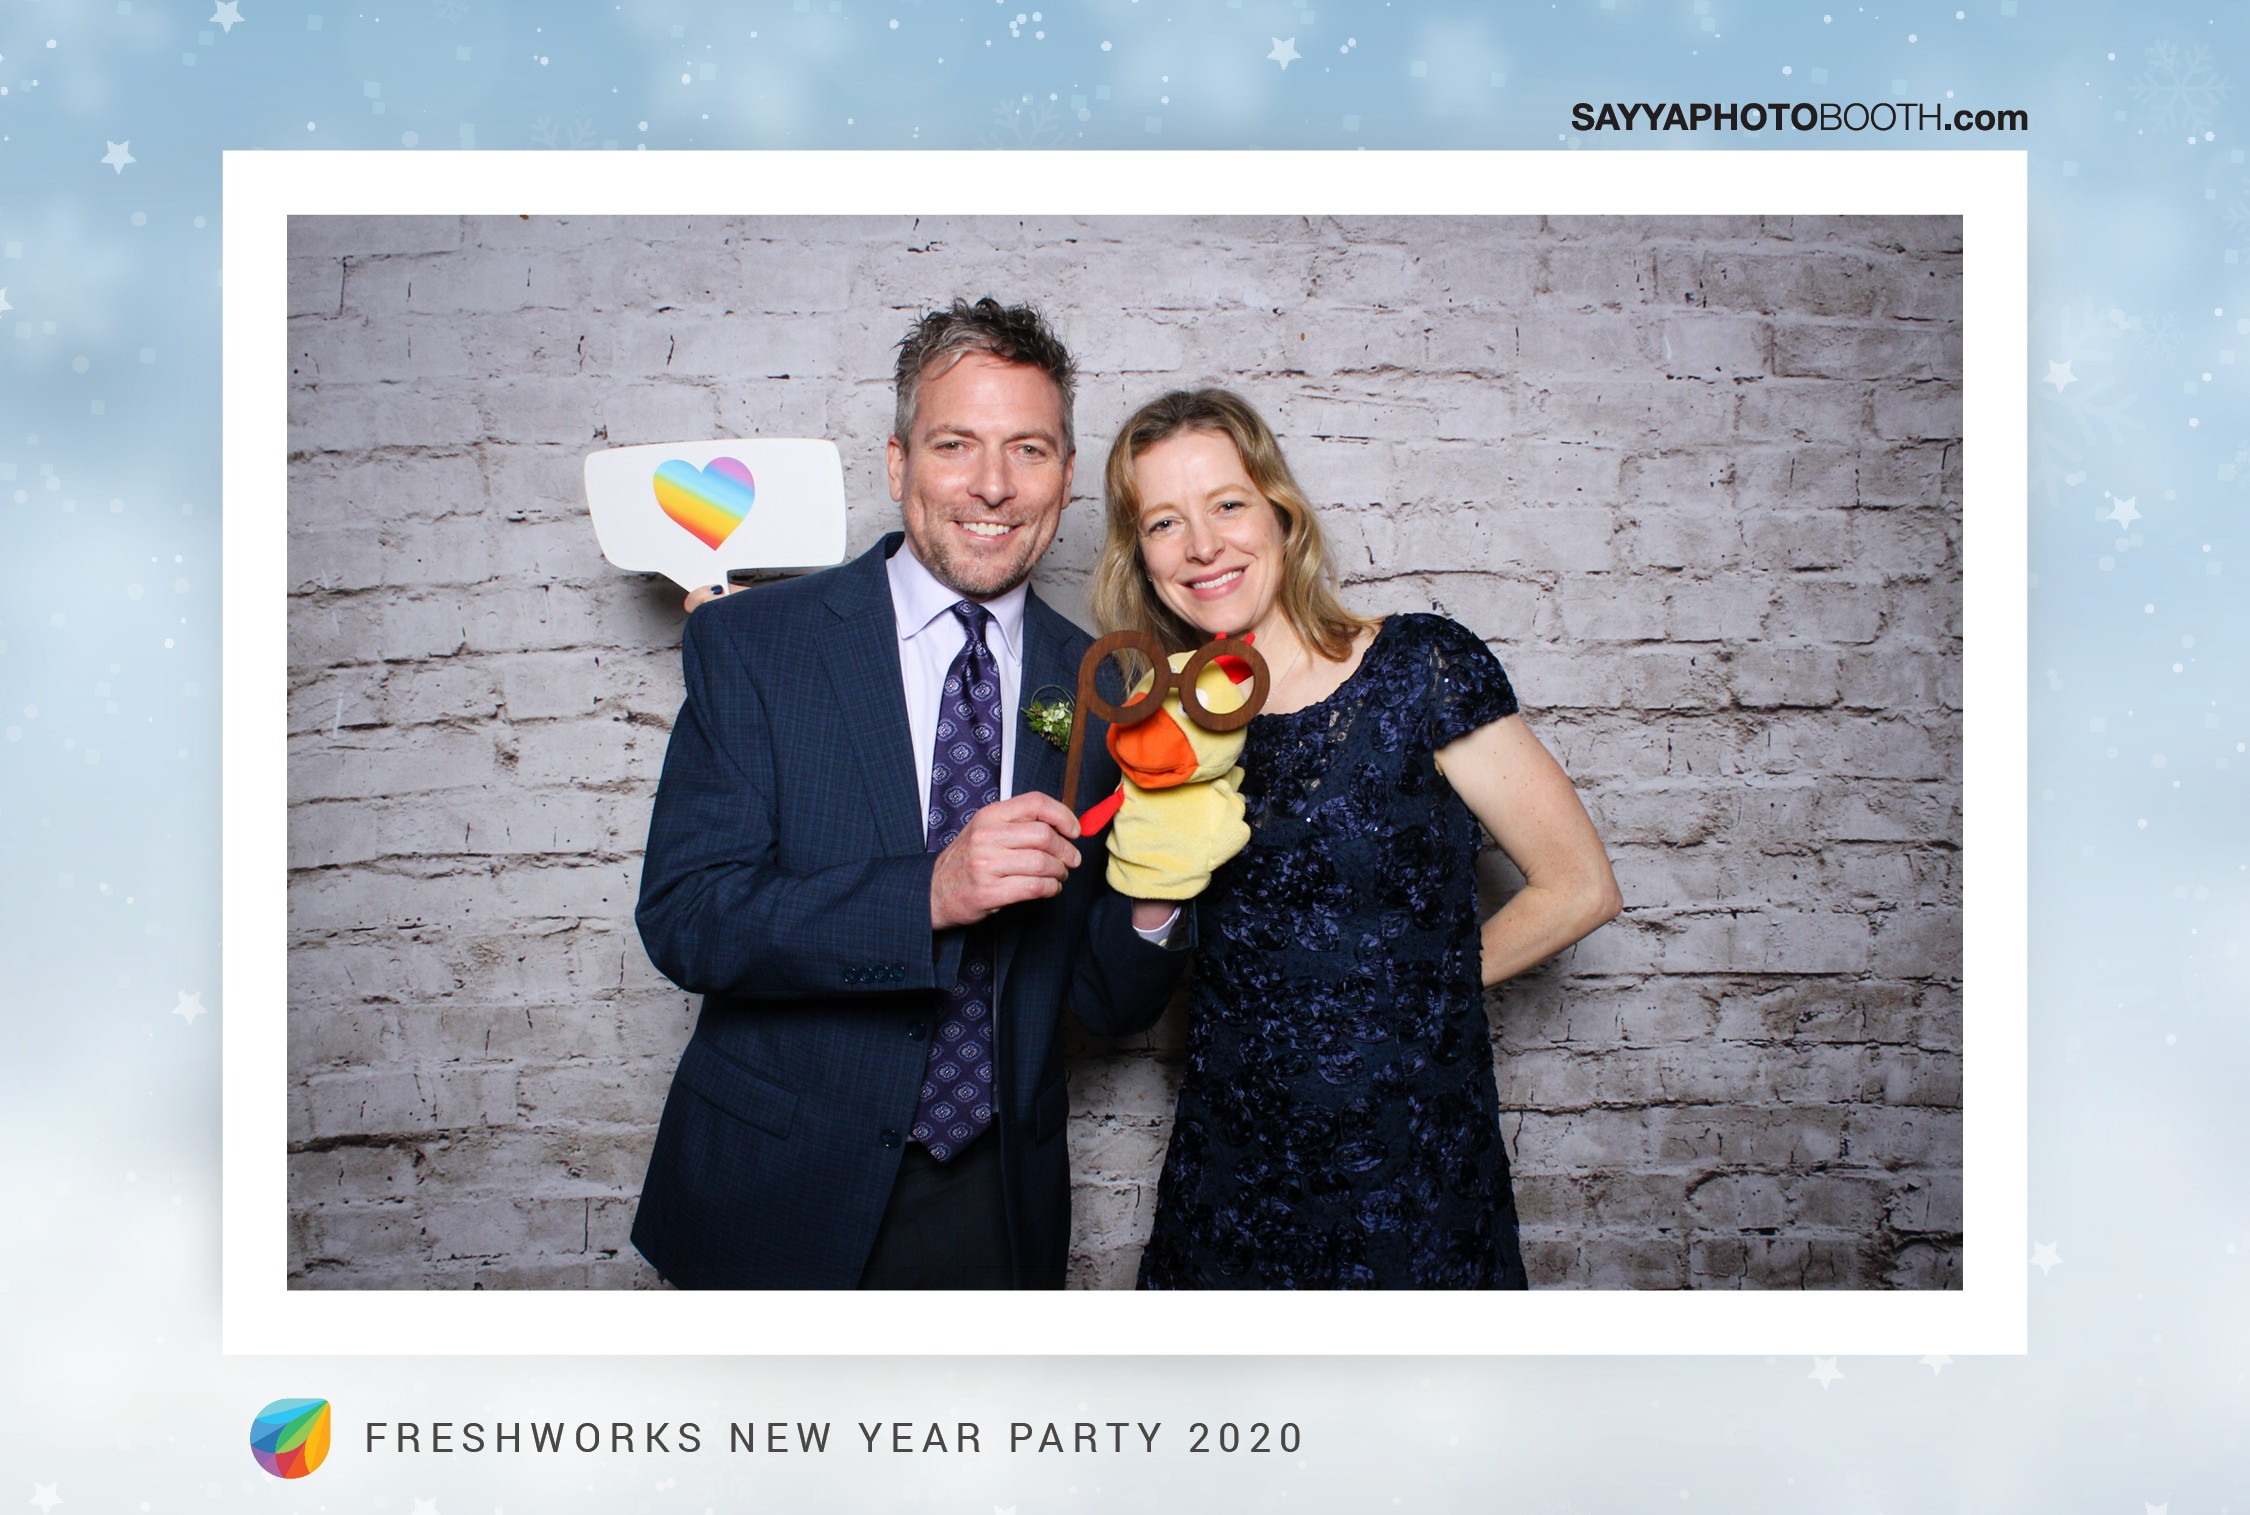 Freshworks New Year Party